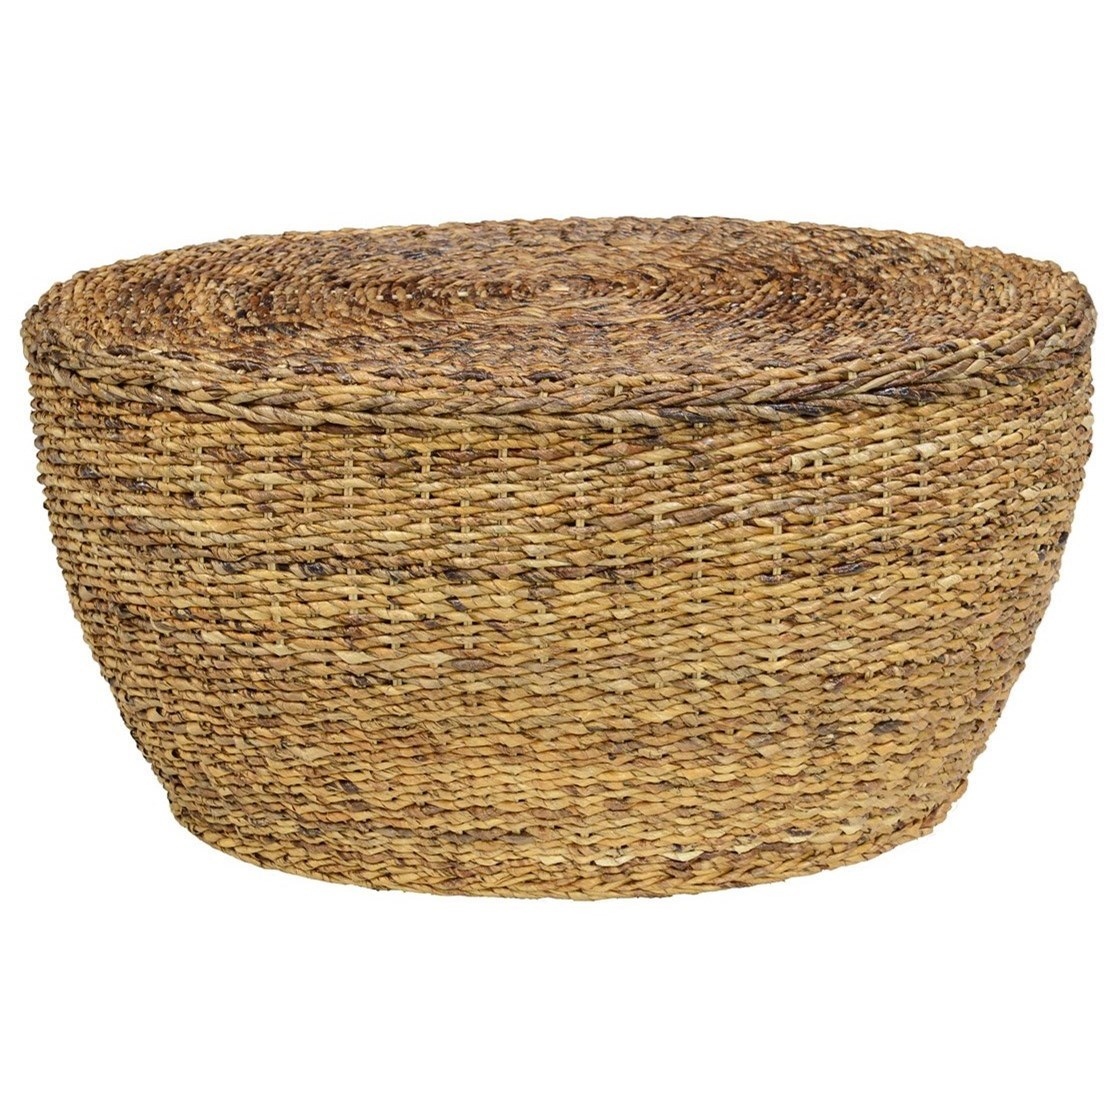 Classic home kirana oval rattan coffee table for Classic home furniture jacksonville fl